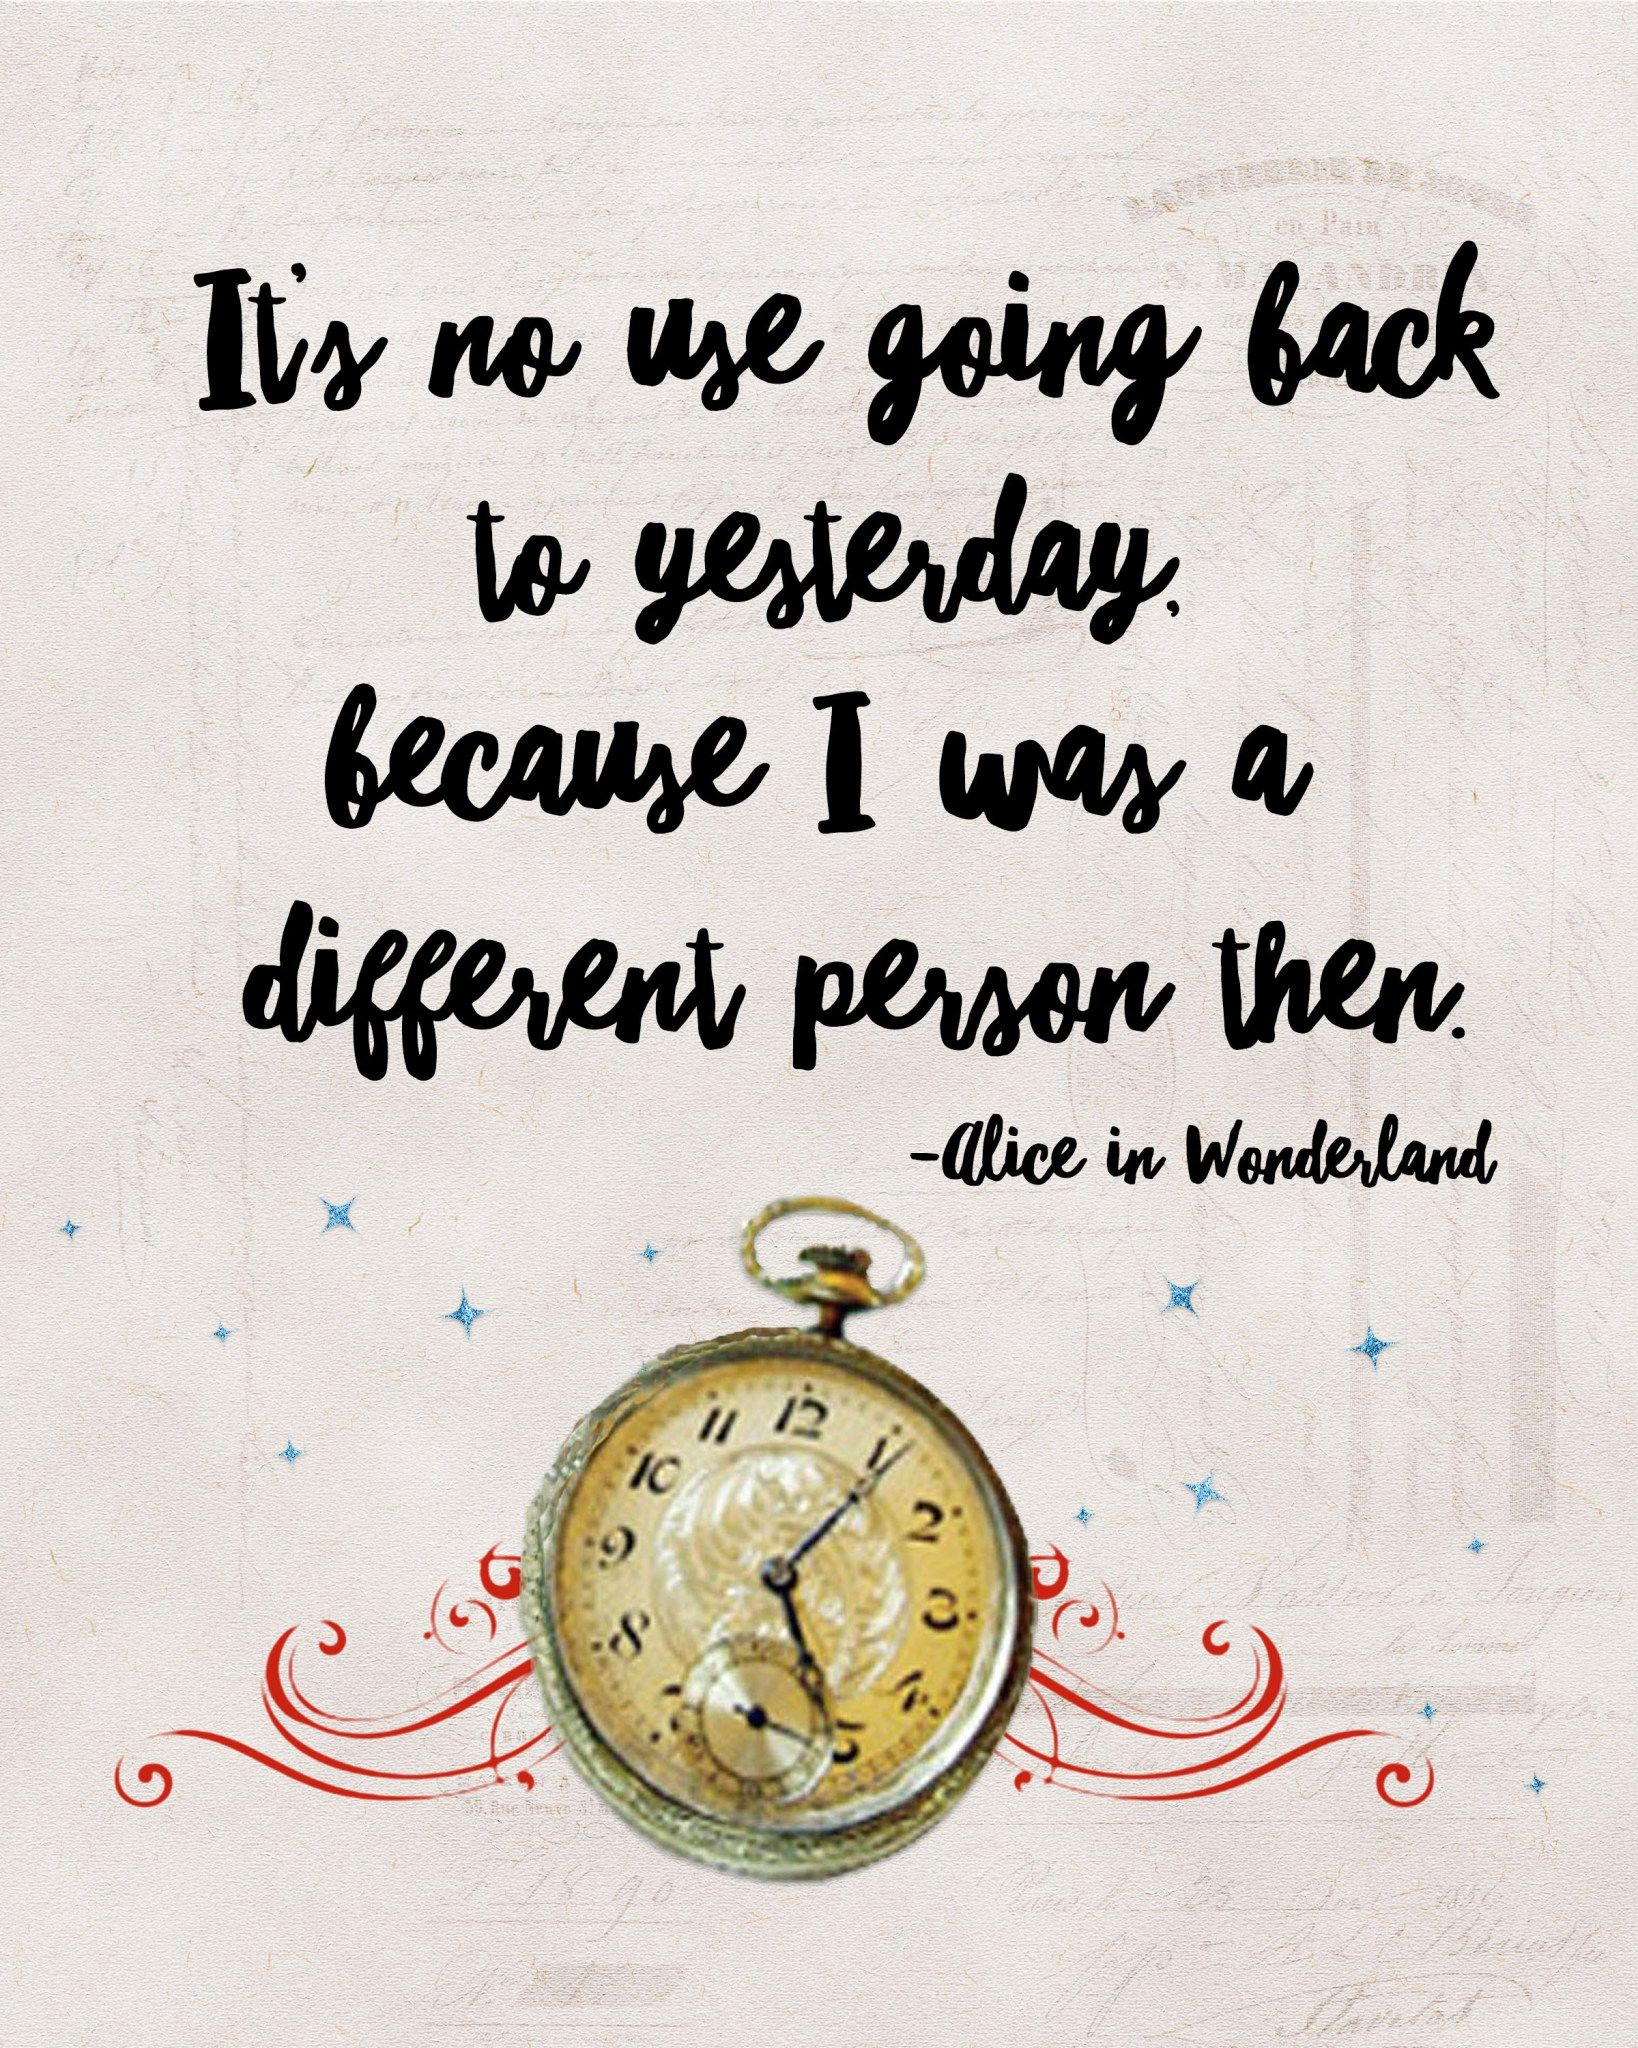 Alice in wonderland quote. Free clipart image quotes power of desire